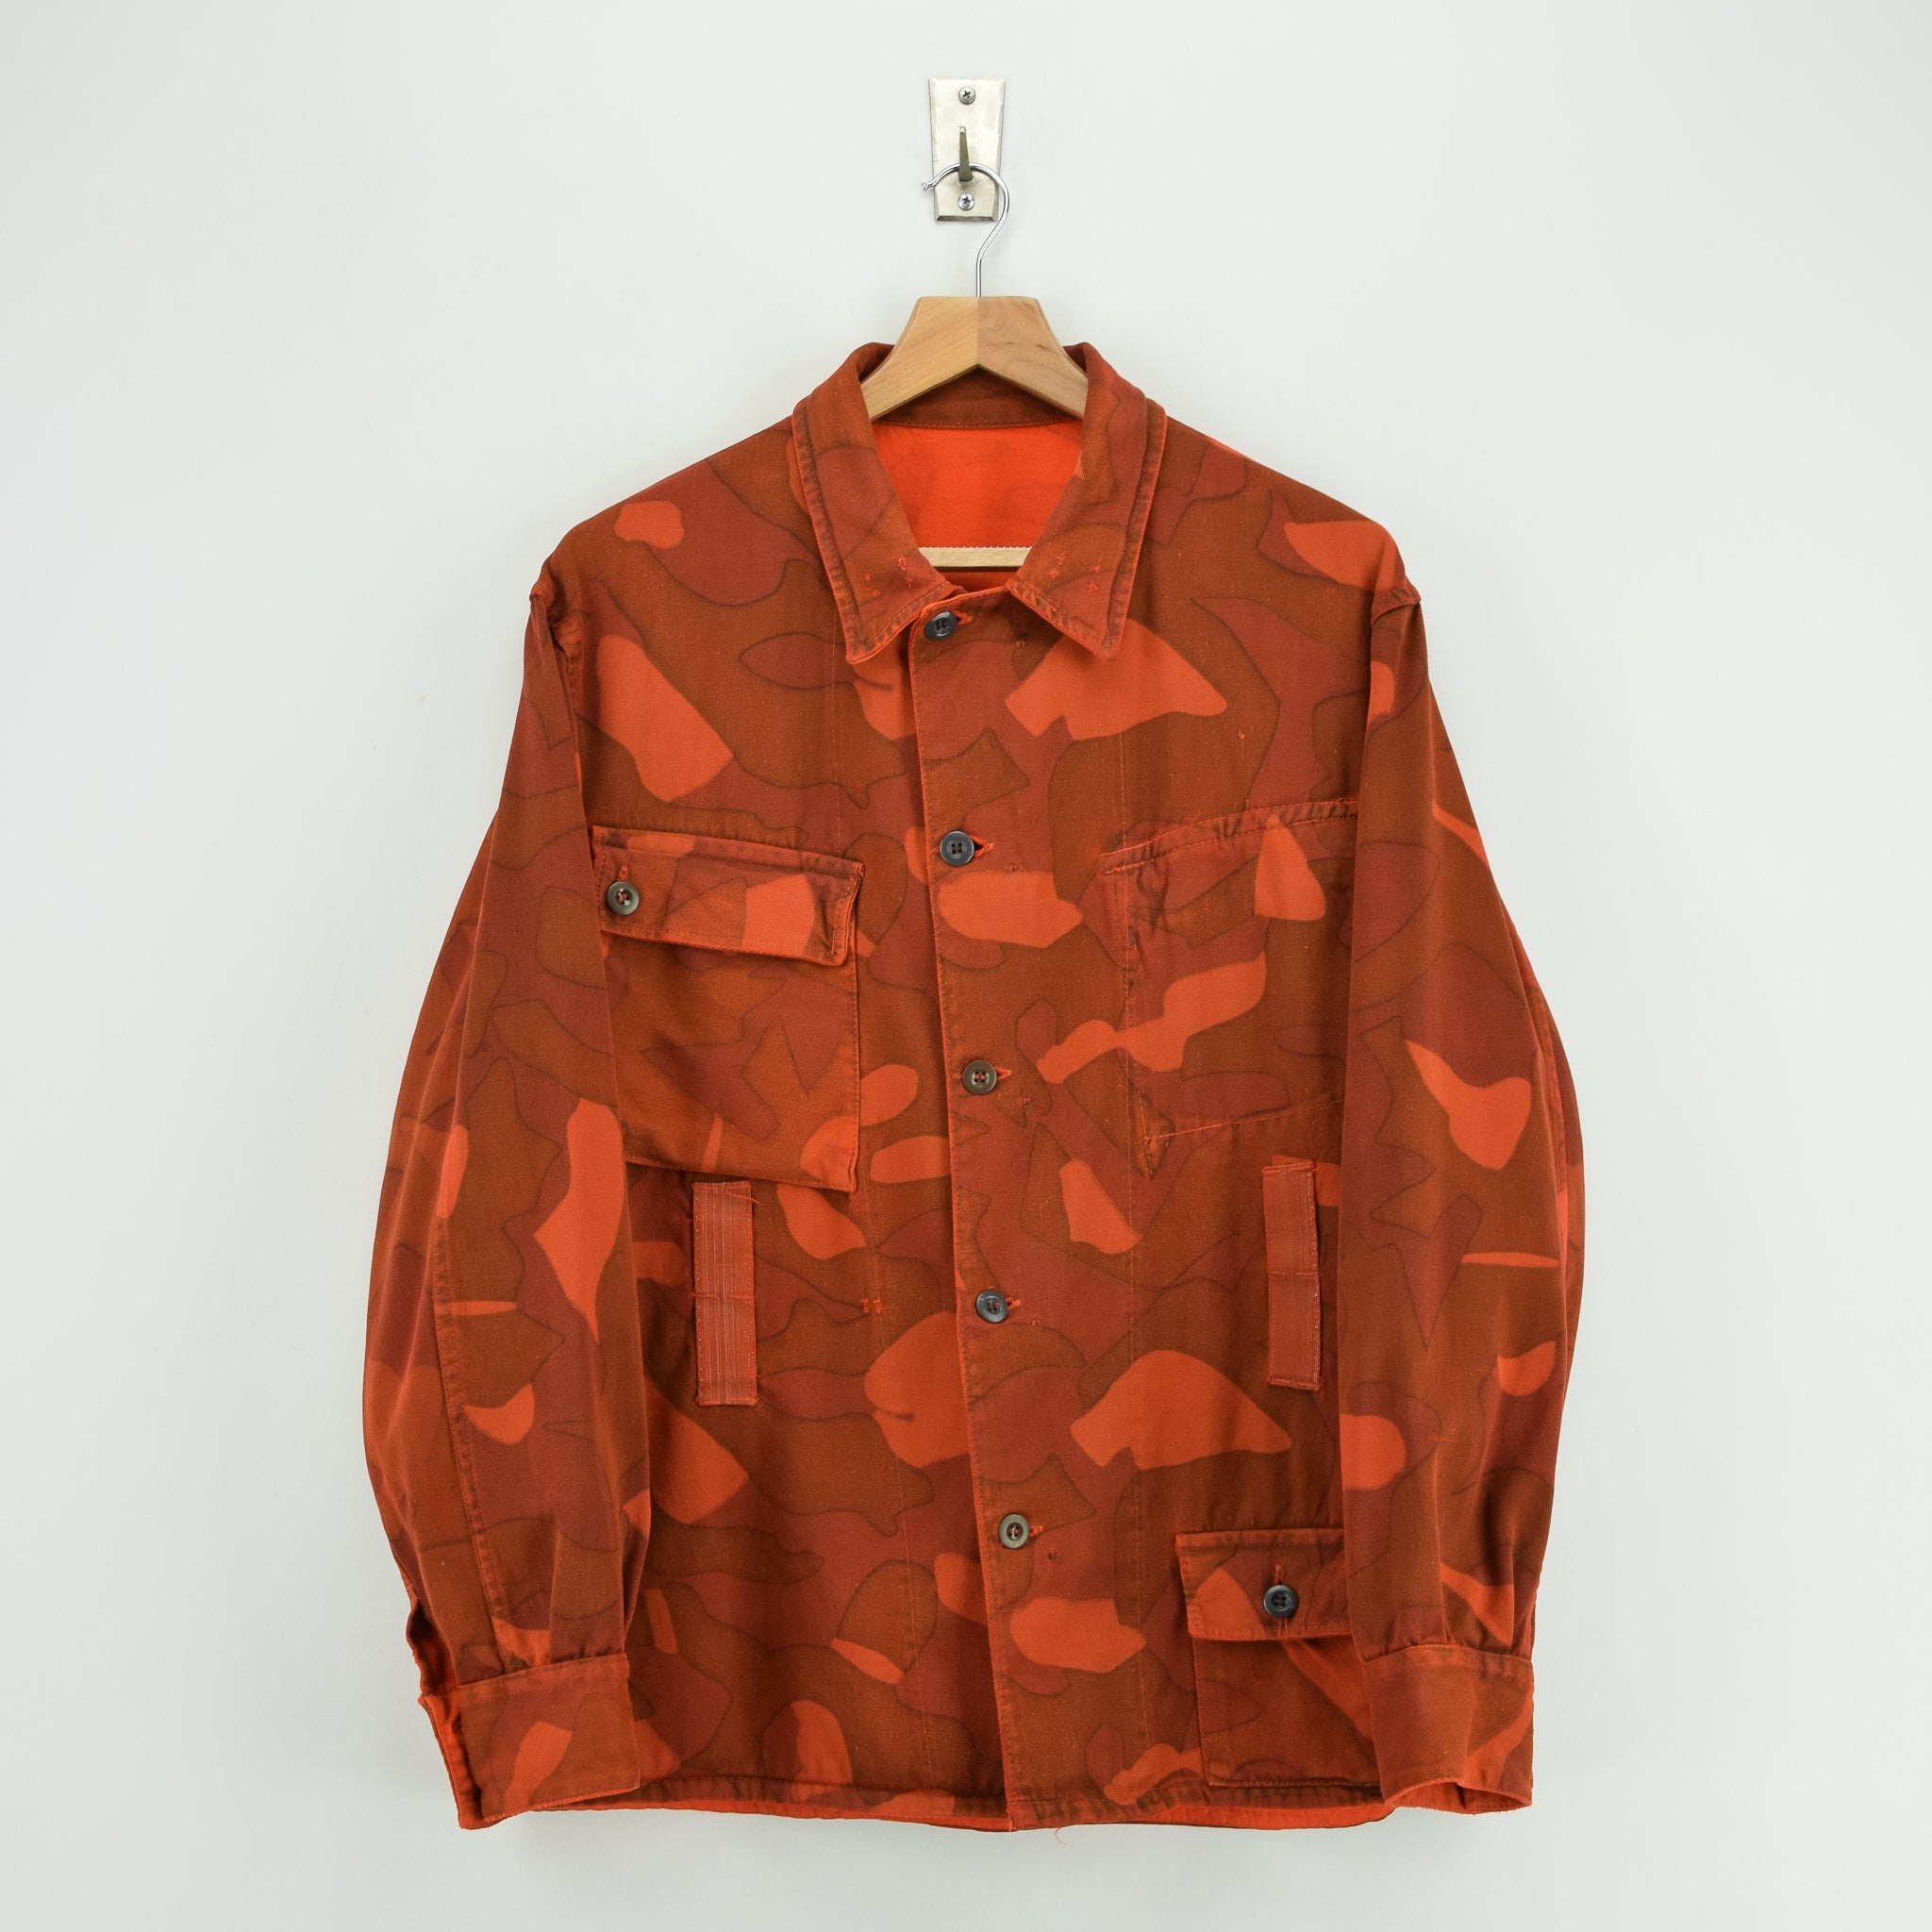 Vintage 60s Military Finnish Army Orange Overdyed Camo Mountain Field Jacket L front